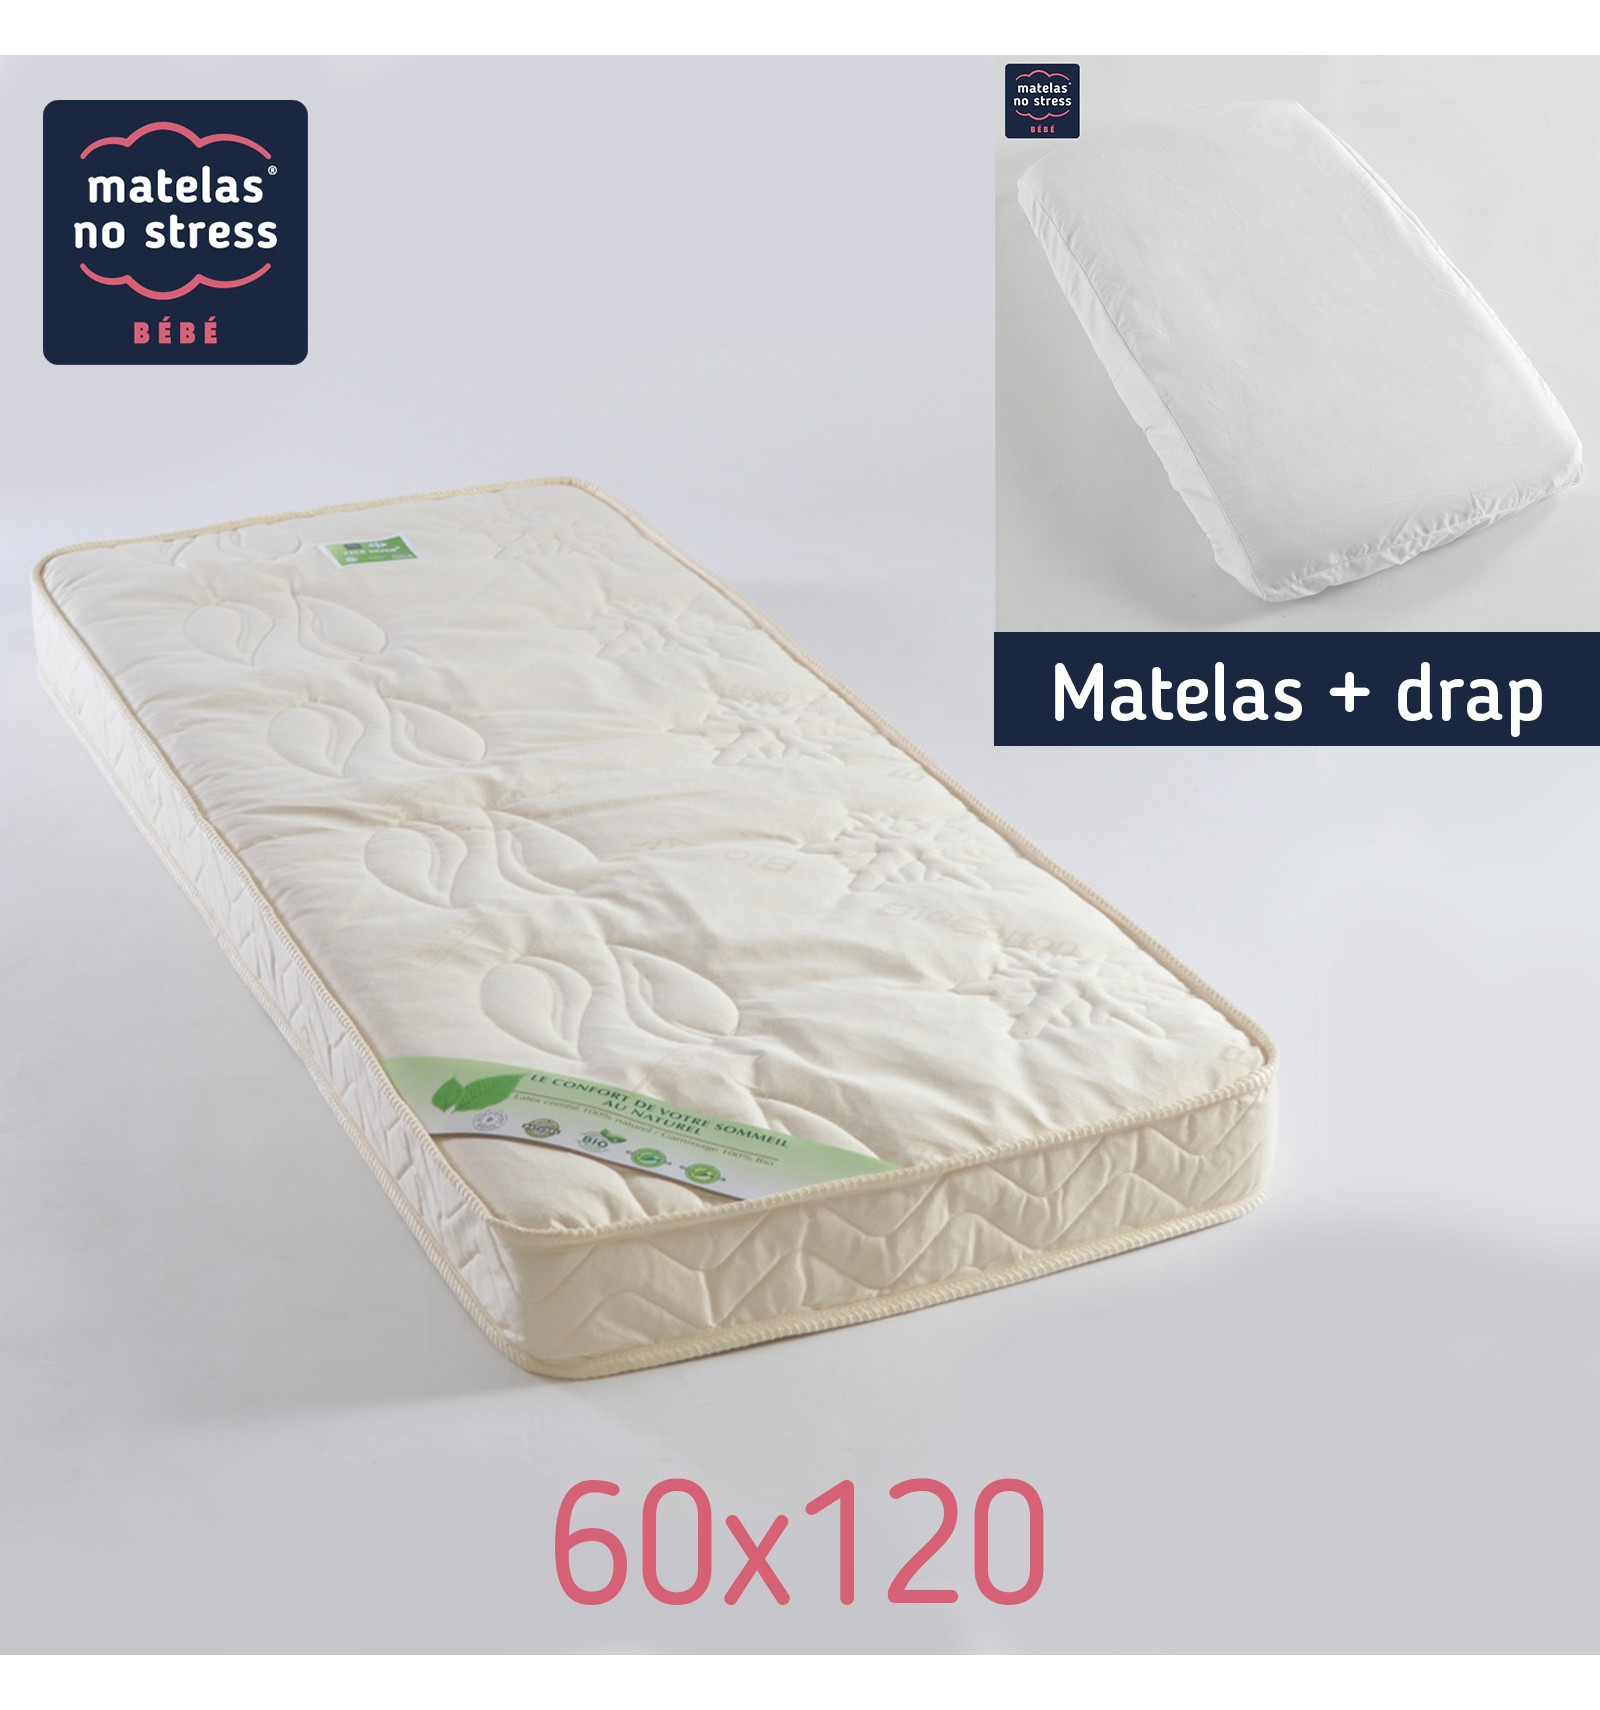 matelas 60x120 fibres de coco et son drap housse couffin matelas. Black Bedroom Furniture Sets. Home Design Ideas